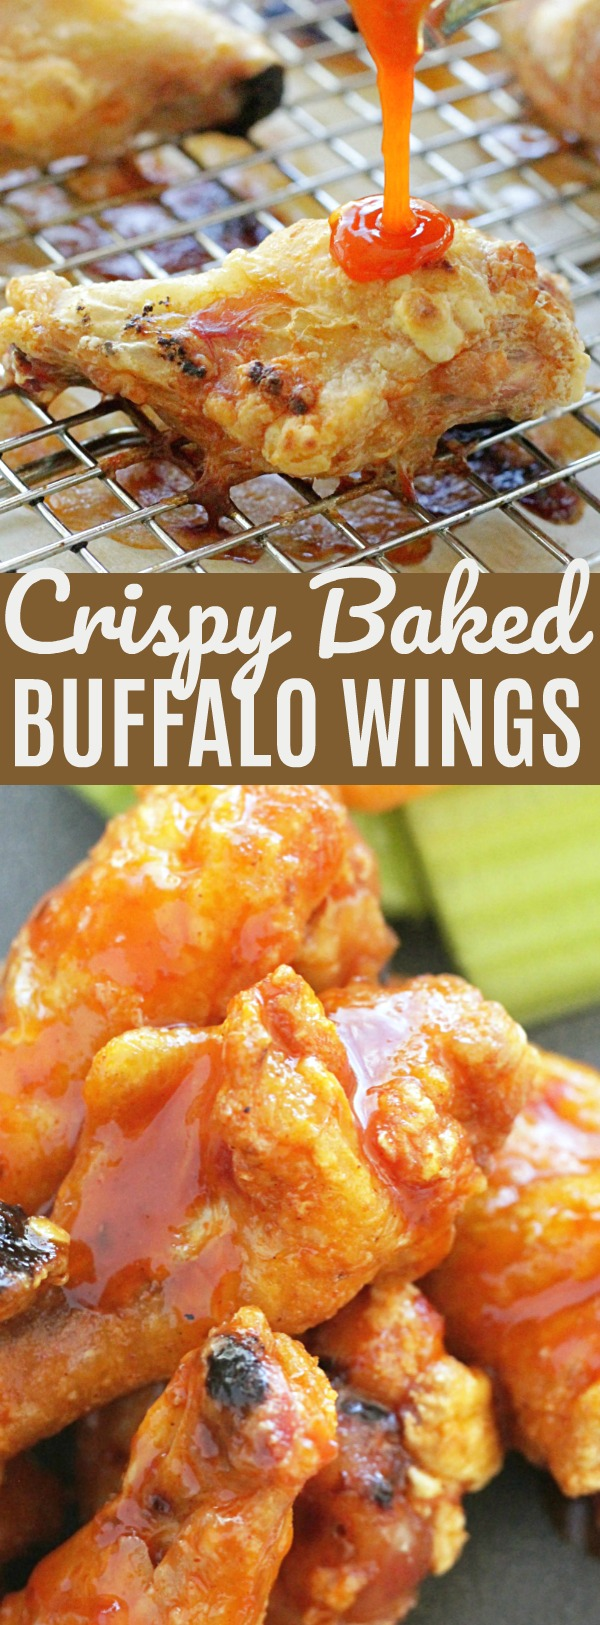 Crispy Baked Chicken Wings - with the best Buffalo Sauce | Foodtastic Mom